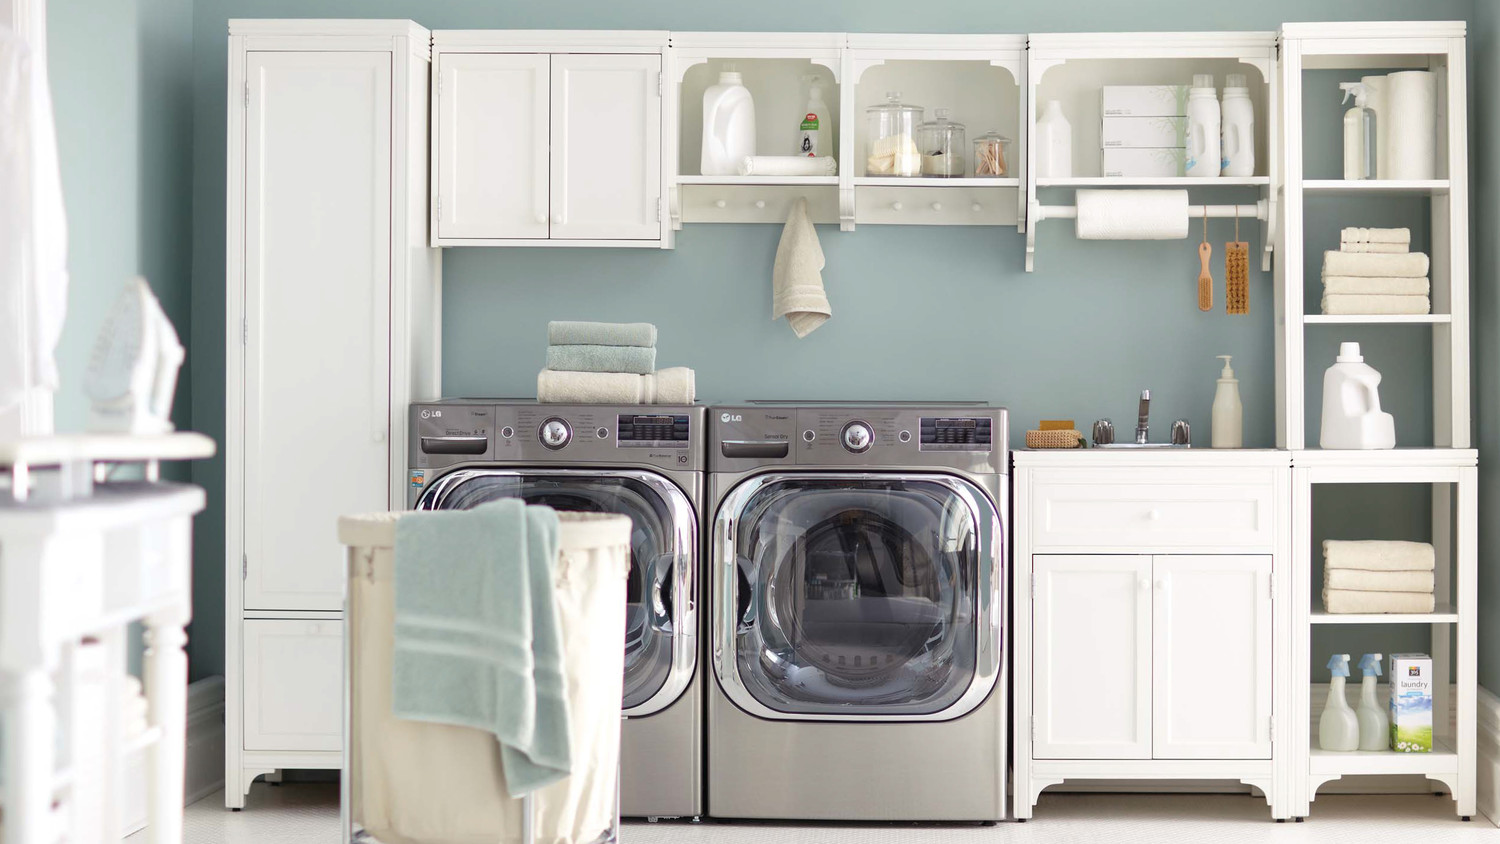 Compact laundry room 12 essential laundry-room organizing ideas | martha stewart evvoqzi